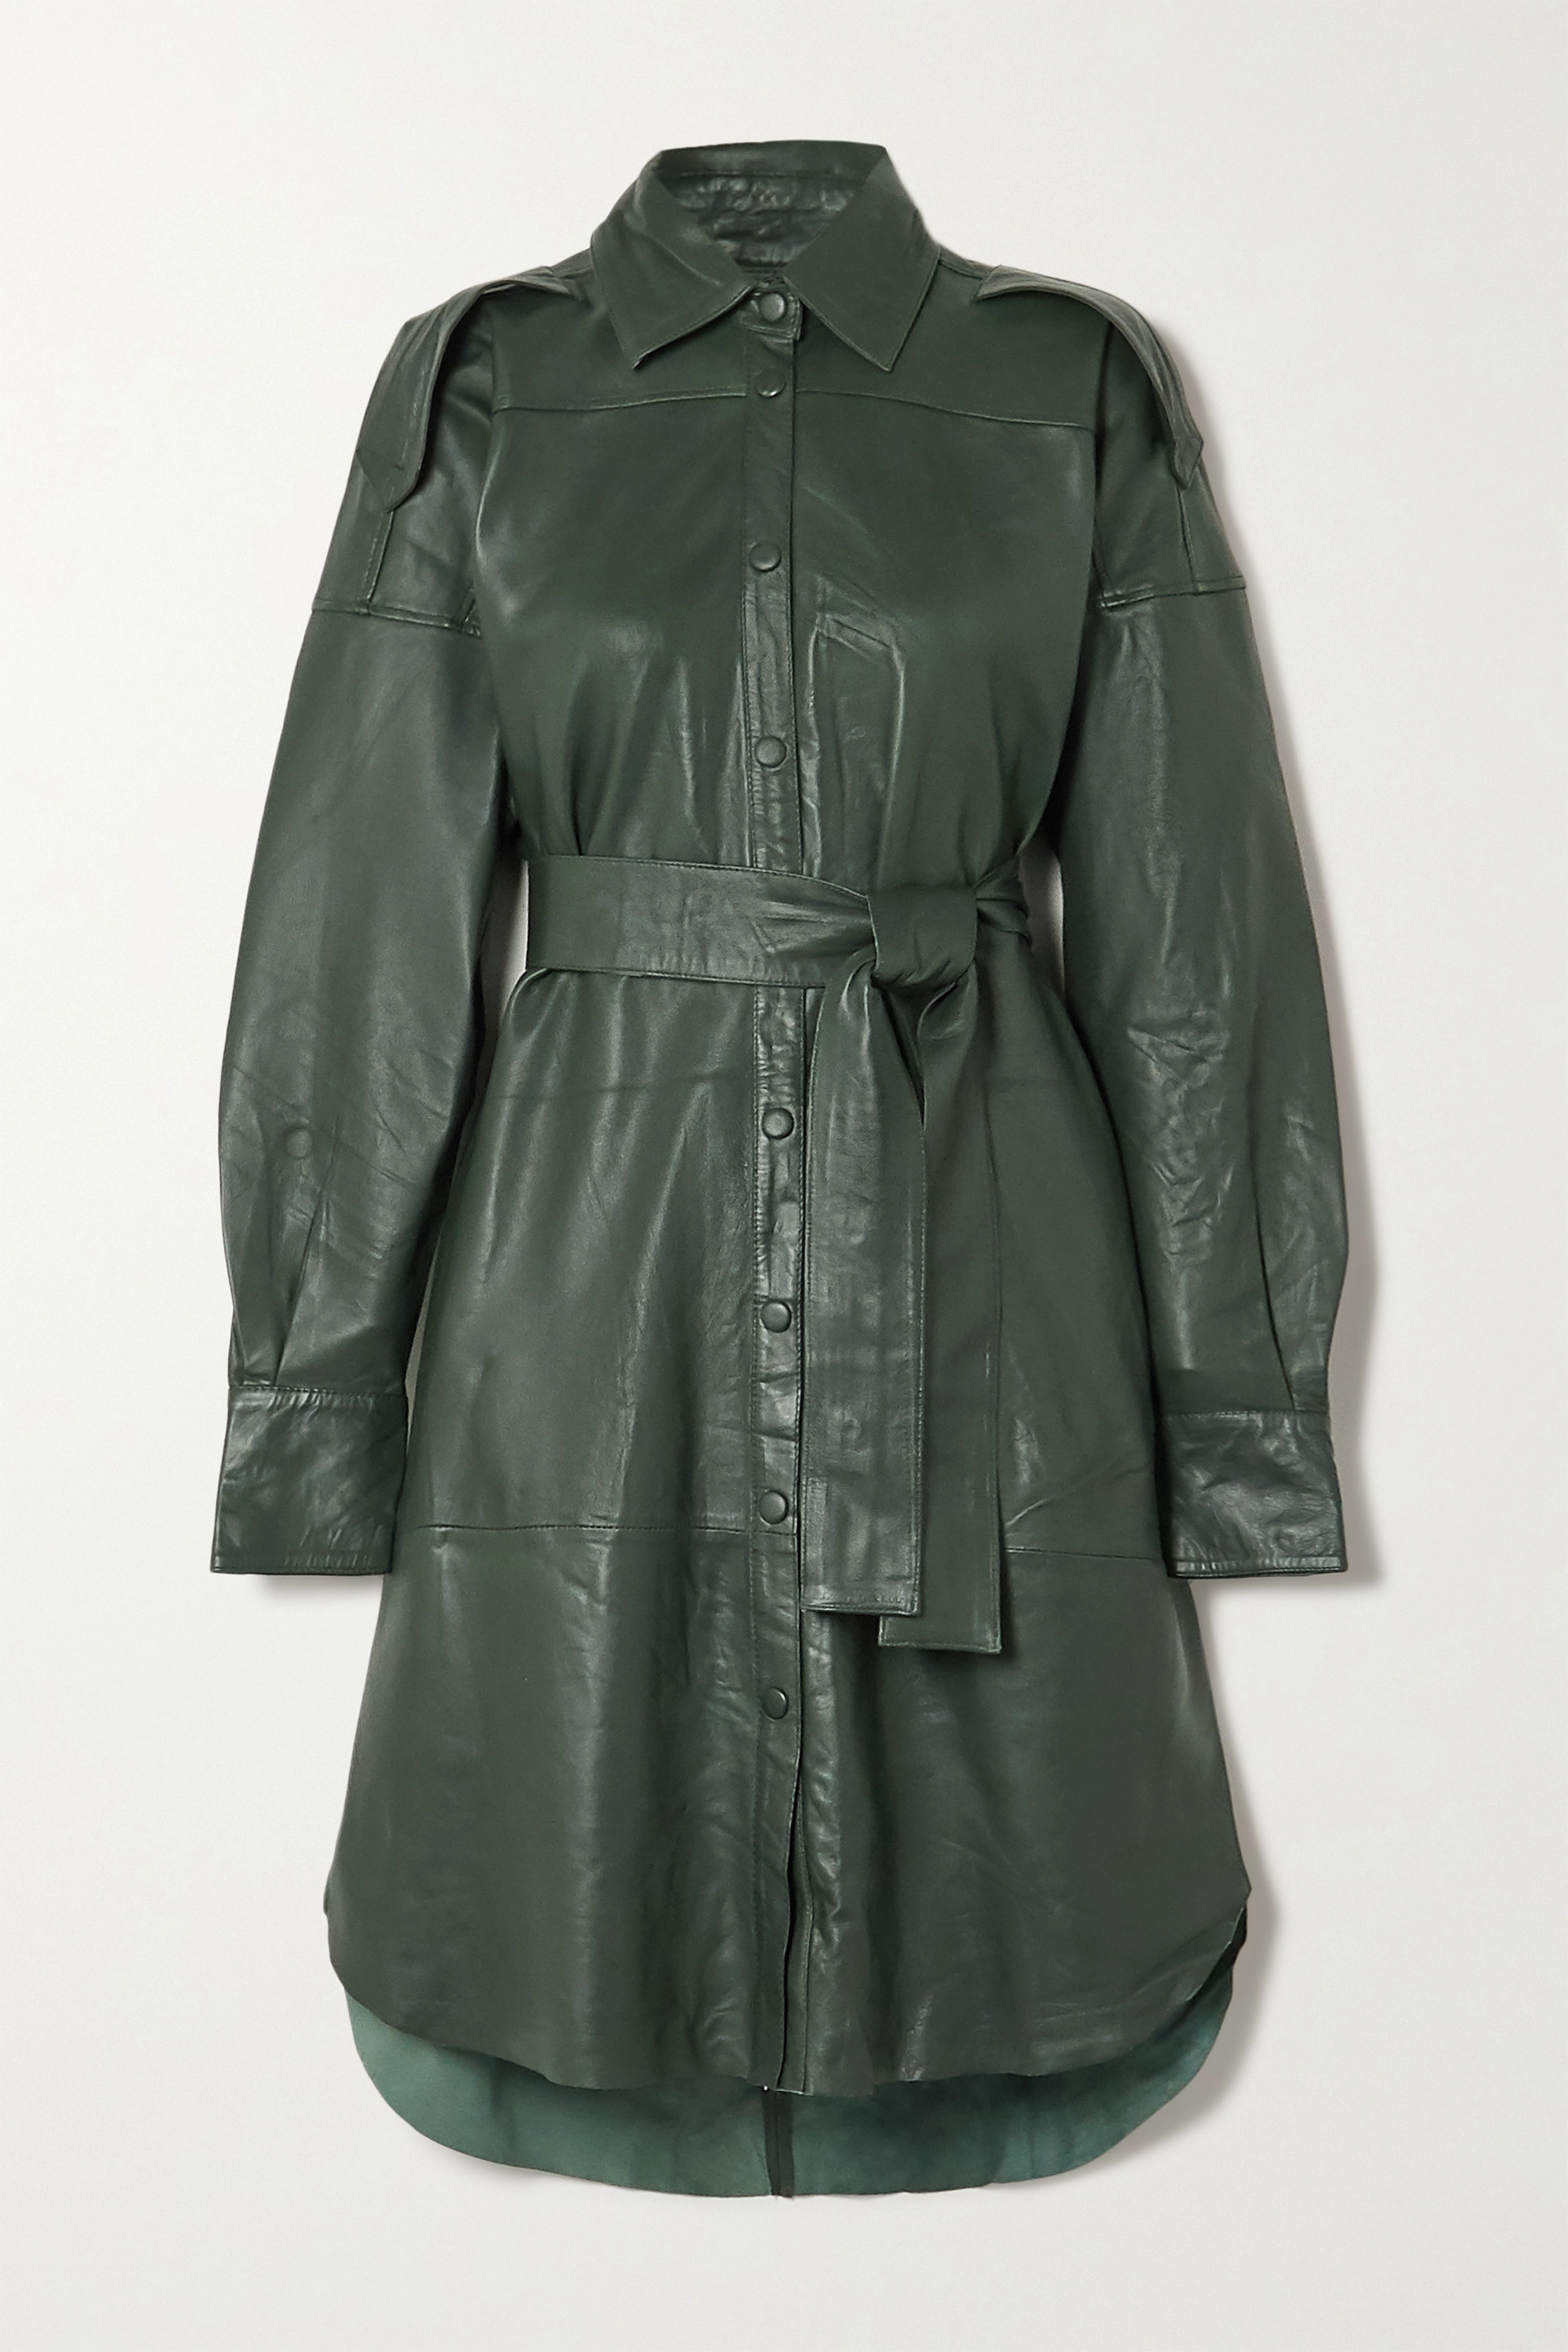 REMAIN Birger Christensen Lavare belted leather shirt dress